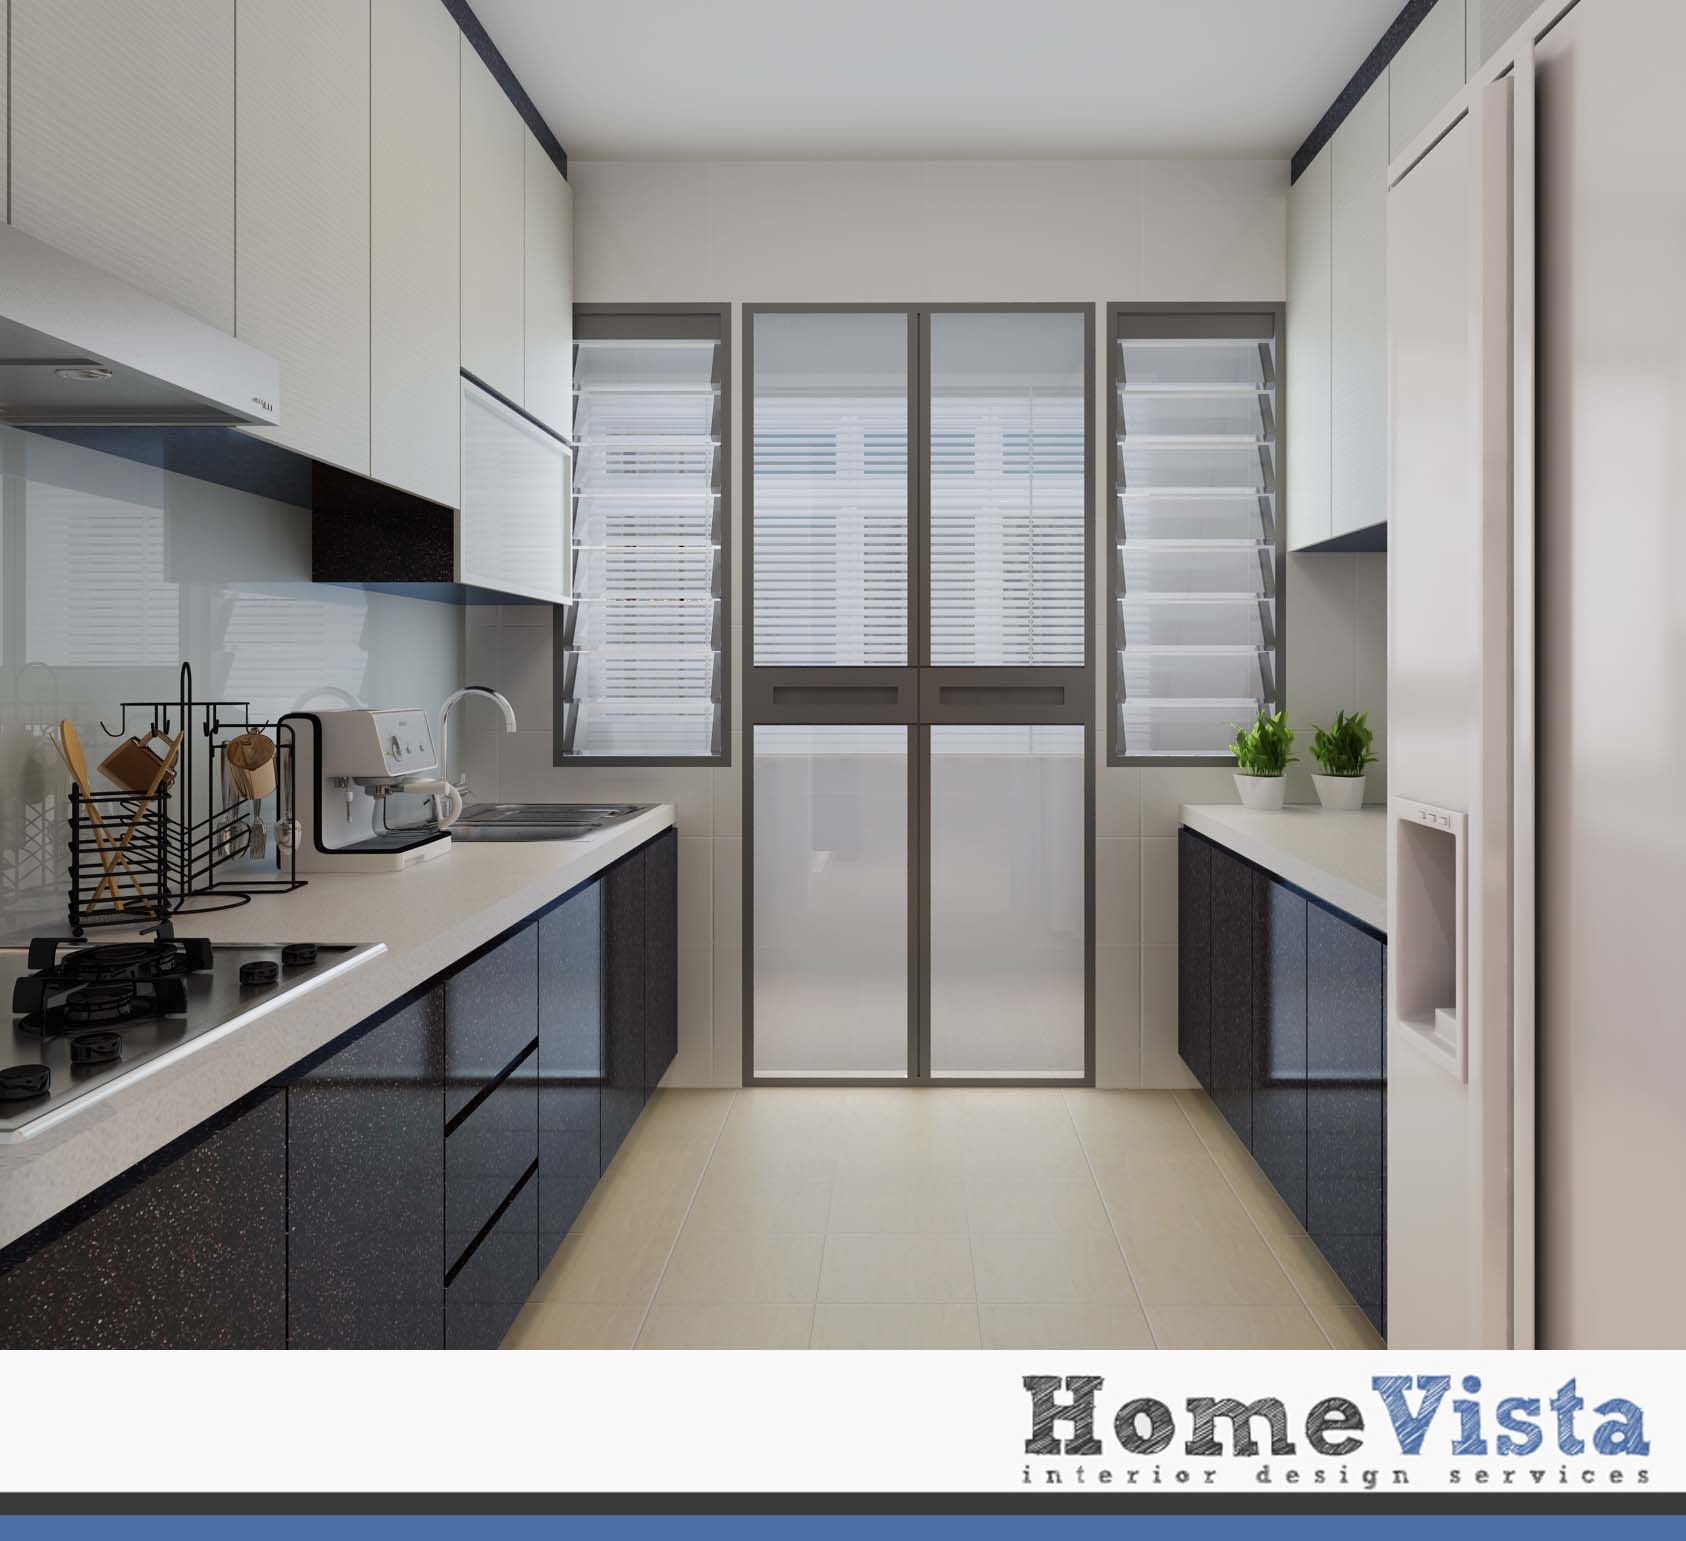 Kitchen Designers Houston Magnificent 4 Room Bto  Yishun Hdb Bto  Homevista  Kitchen Design Ideas Design Ideas